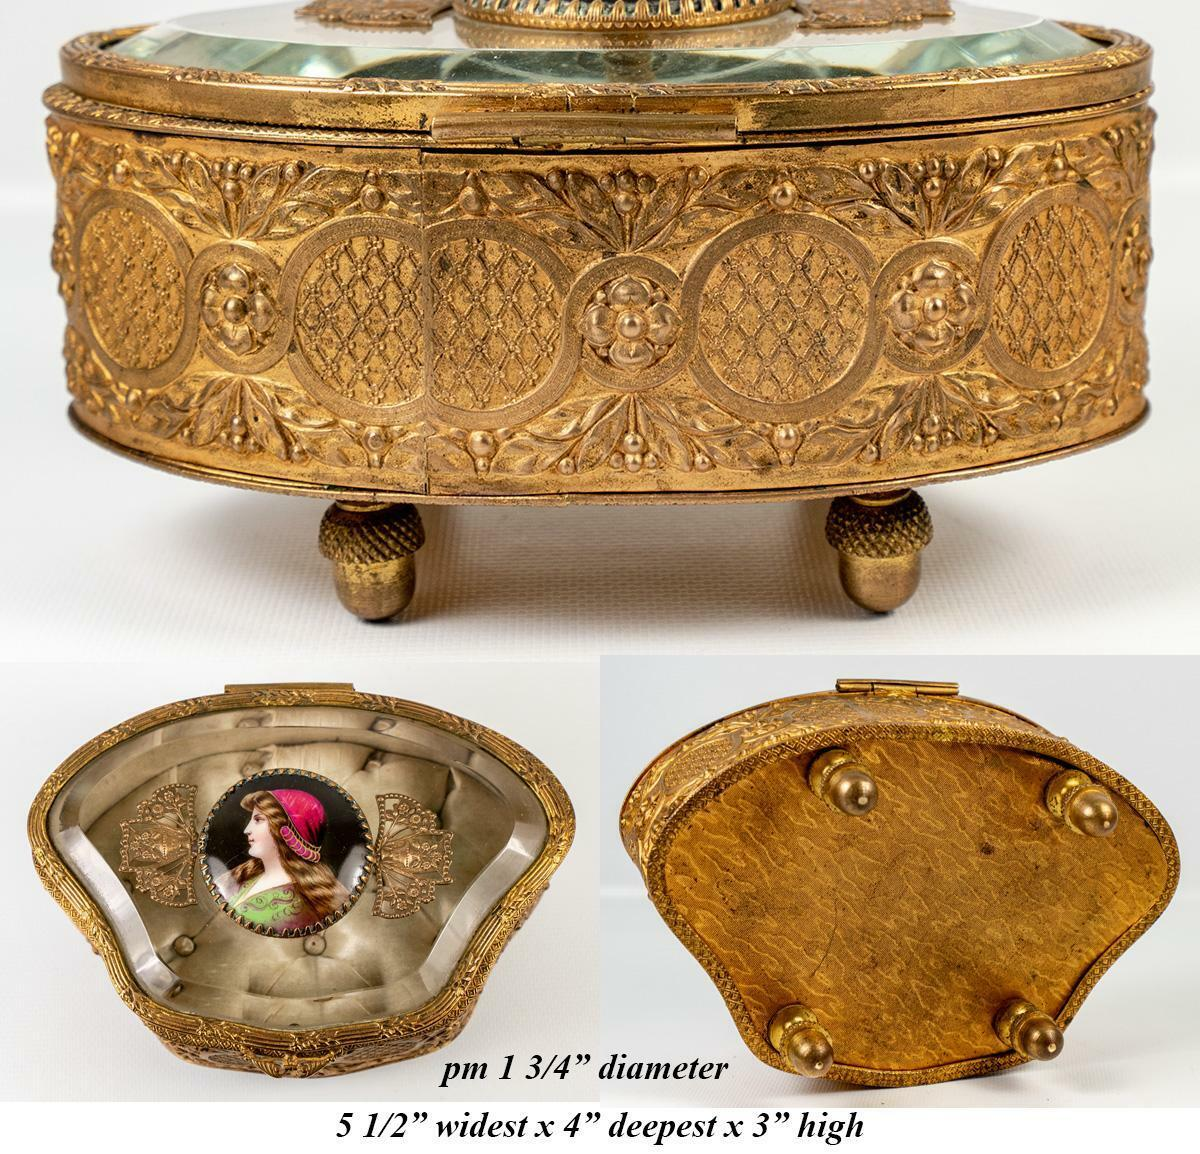 Antique French Jewelry Casket, Box, Glass Top, Kiln-fired Portrait of St. Helen